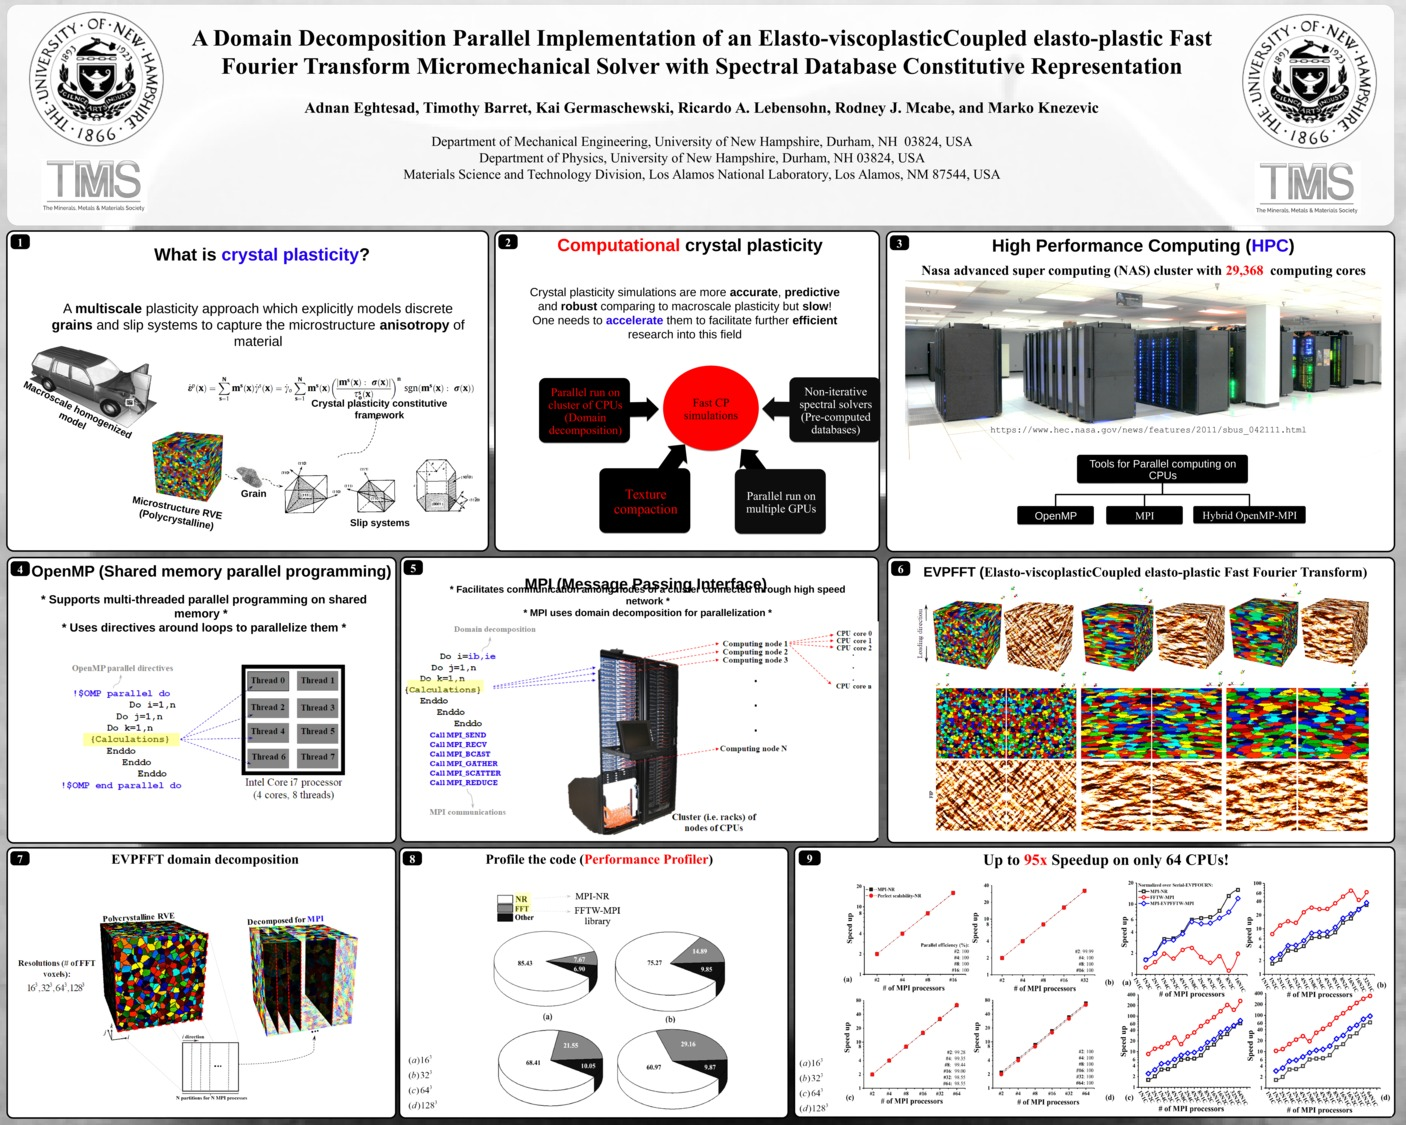 A Domain Decomposition Parallel Implementation Of An Elasto-Viscoplasticcoupled Elasto-Plastic Fast Fourier Transform Micromechanical Solver With Spectral Database Constitutive Representation by ae1007